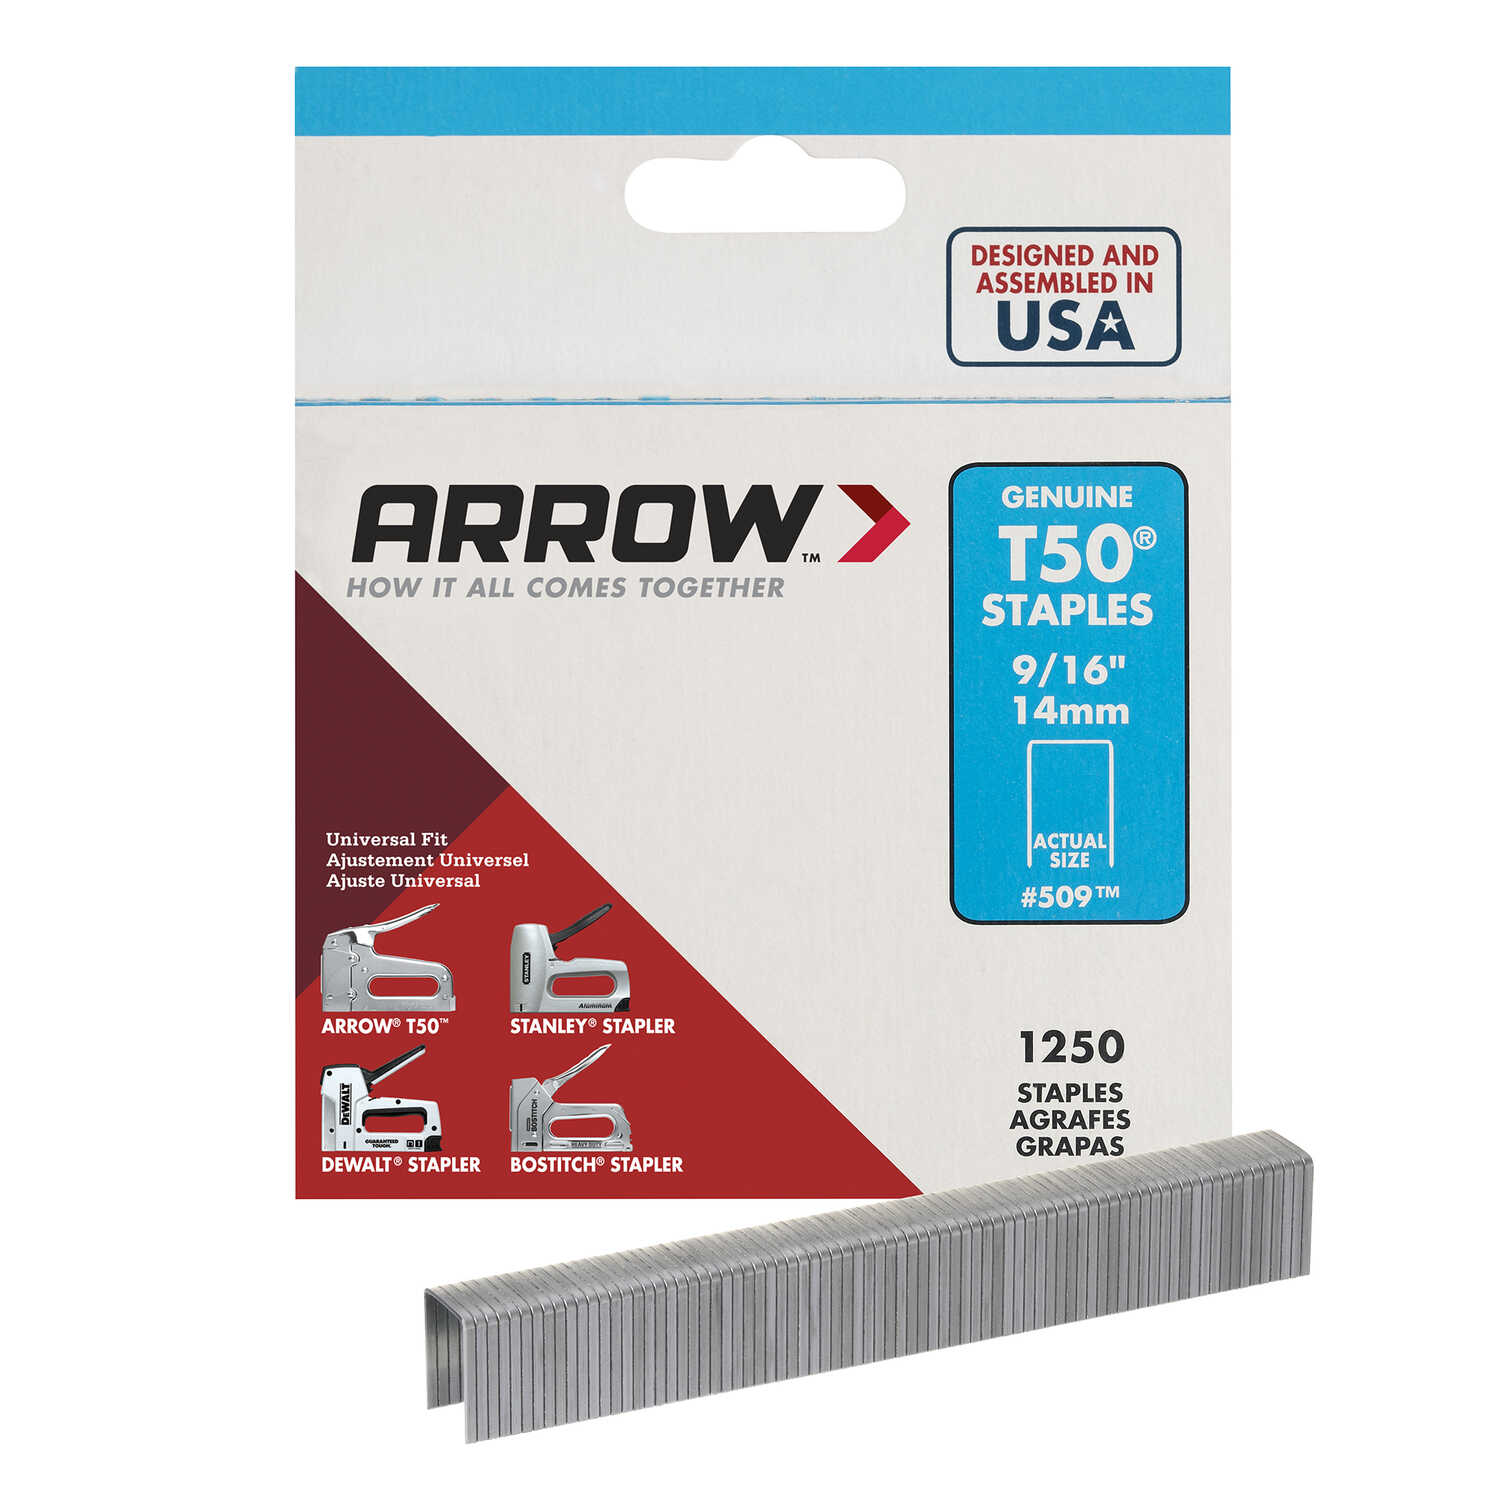 Arrow Fastener  9/16 in. L x 3/8 in. W Galvanized Steel  Flat Crown  Heavy Duty Staples  18 Ga. 1250